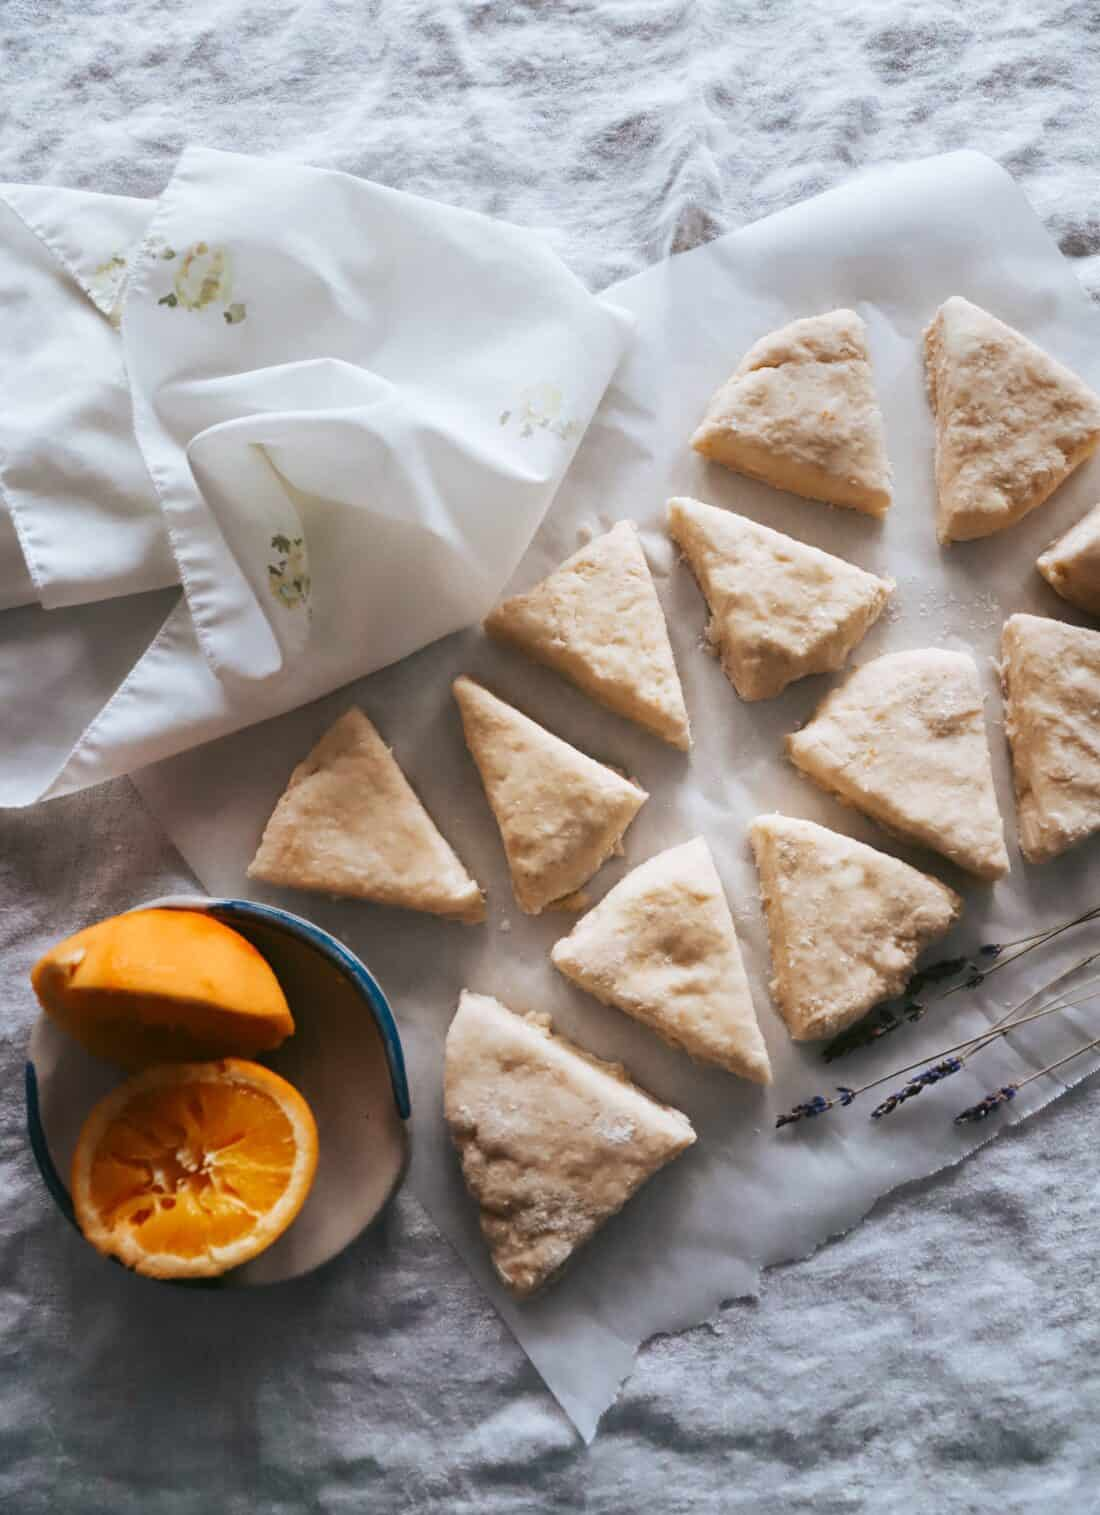 orange scone dough cut into wedges and laying on parchment paper on a table